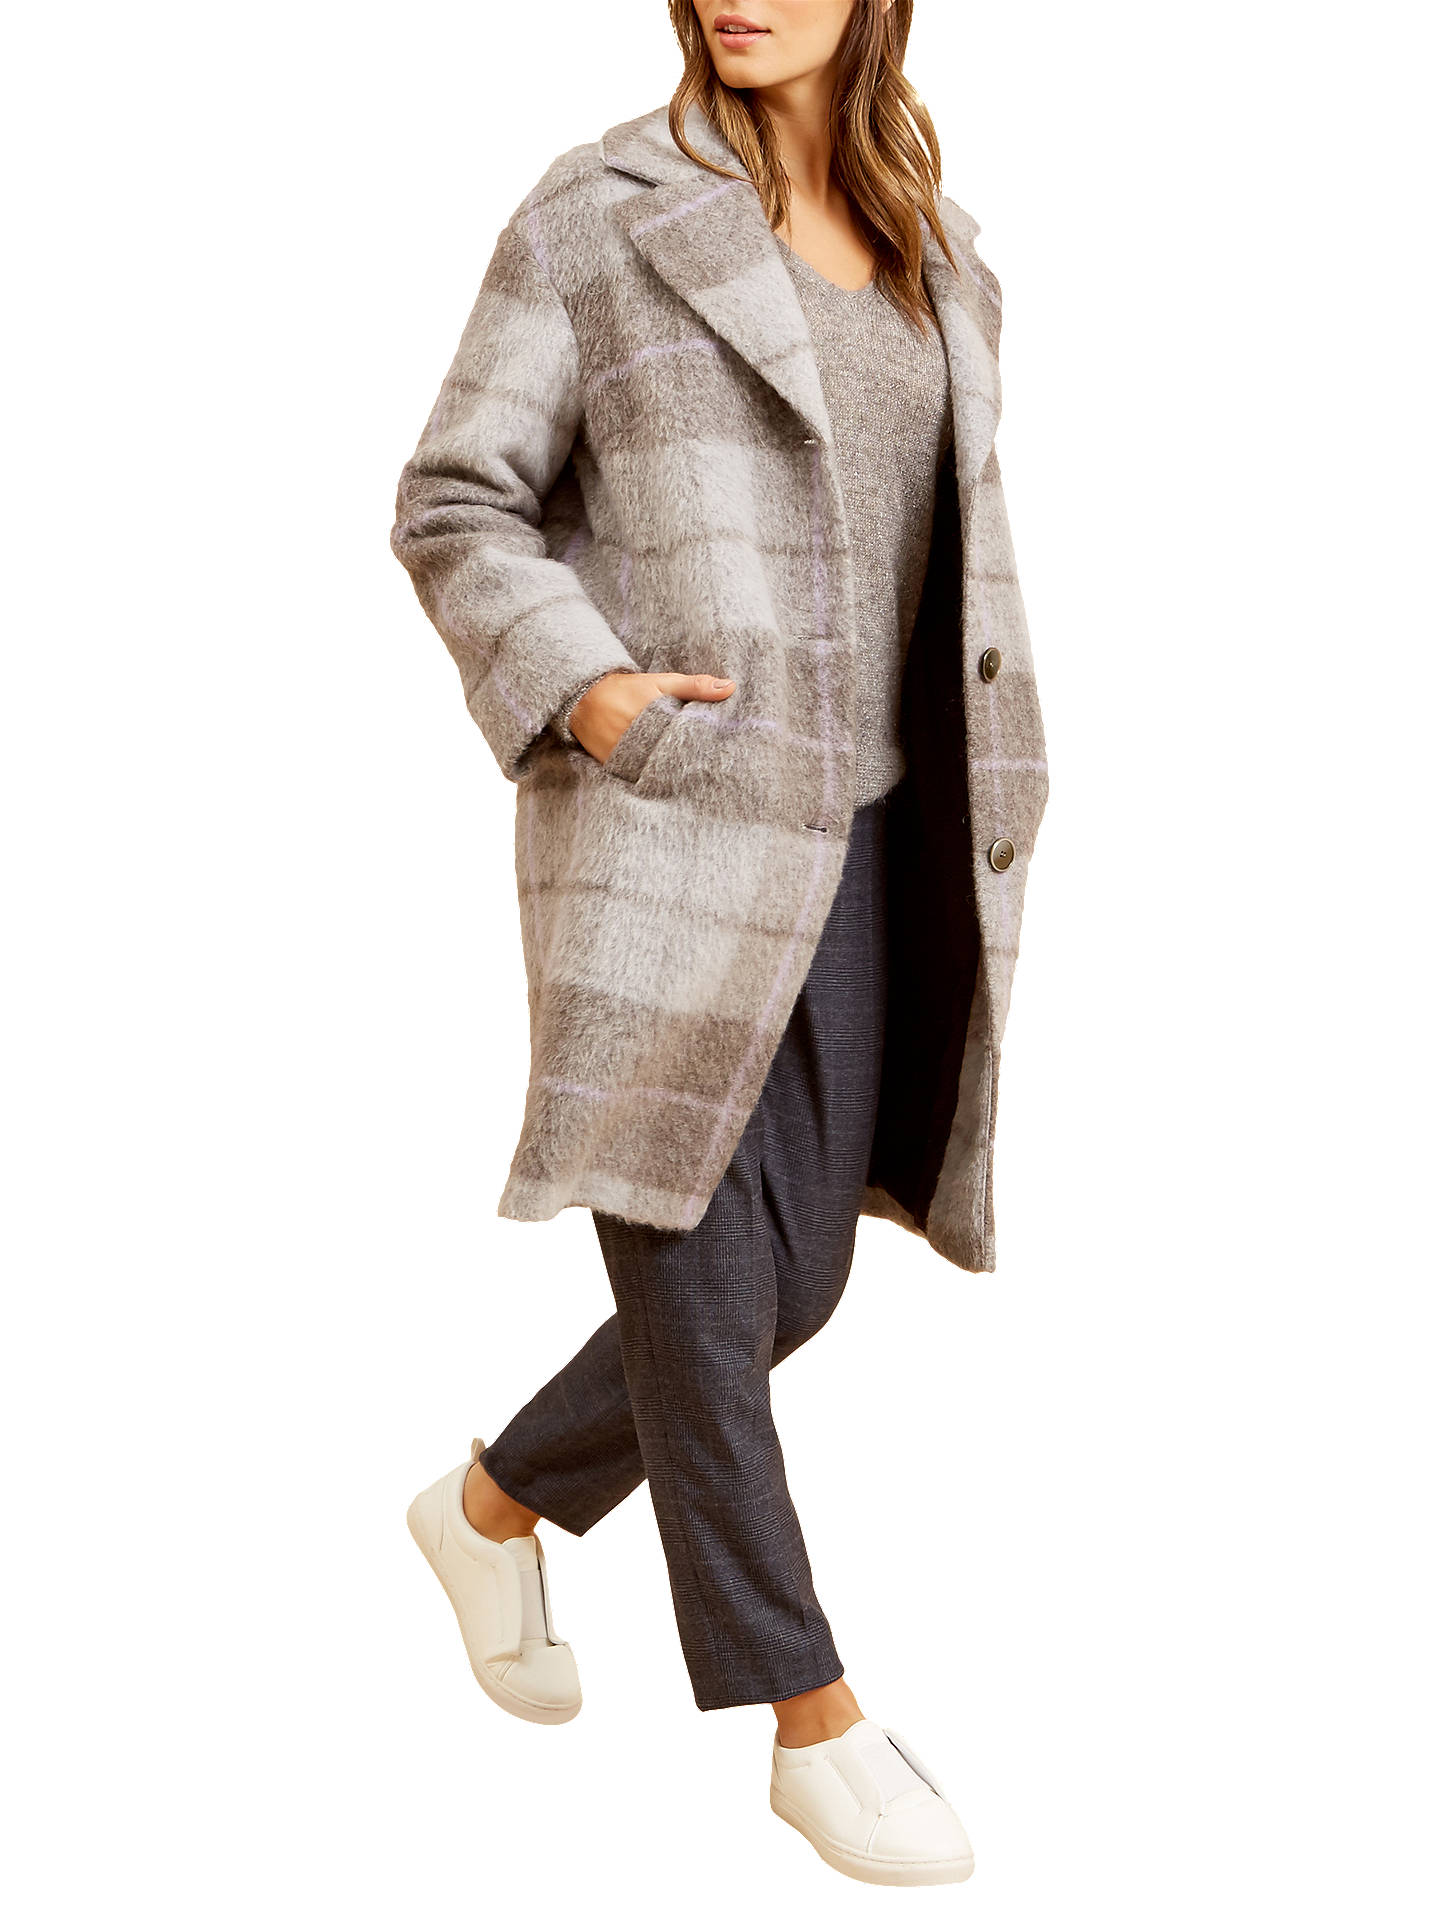 Buy Fenn Wright Manson Petite Brodie Check Coat, Grey, XS Online at johnlewis.com